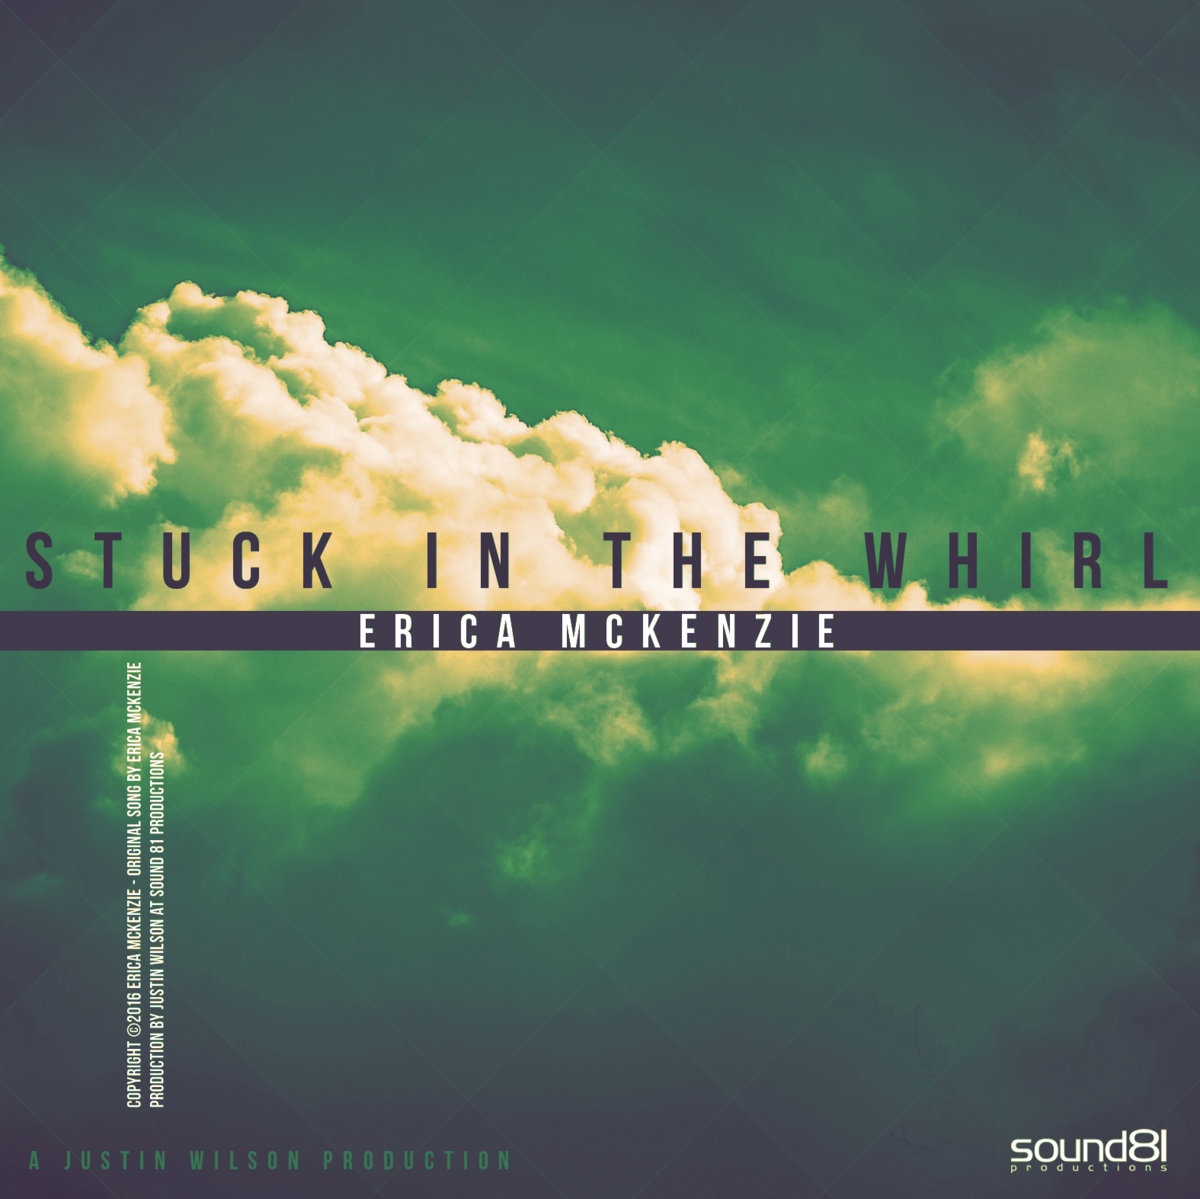 Stuck In The Whirl by Erica McKenzie